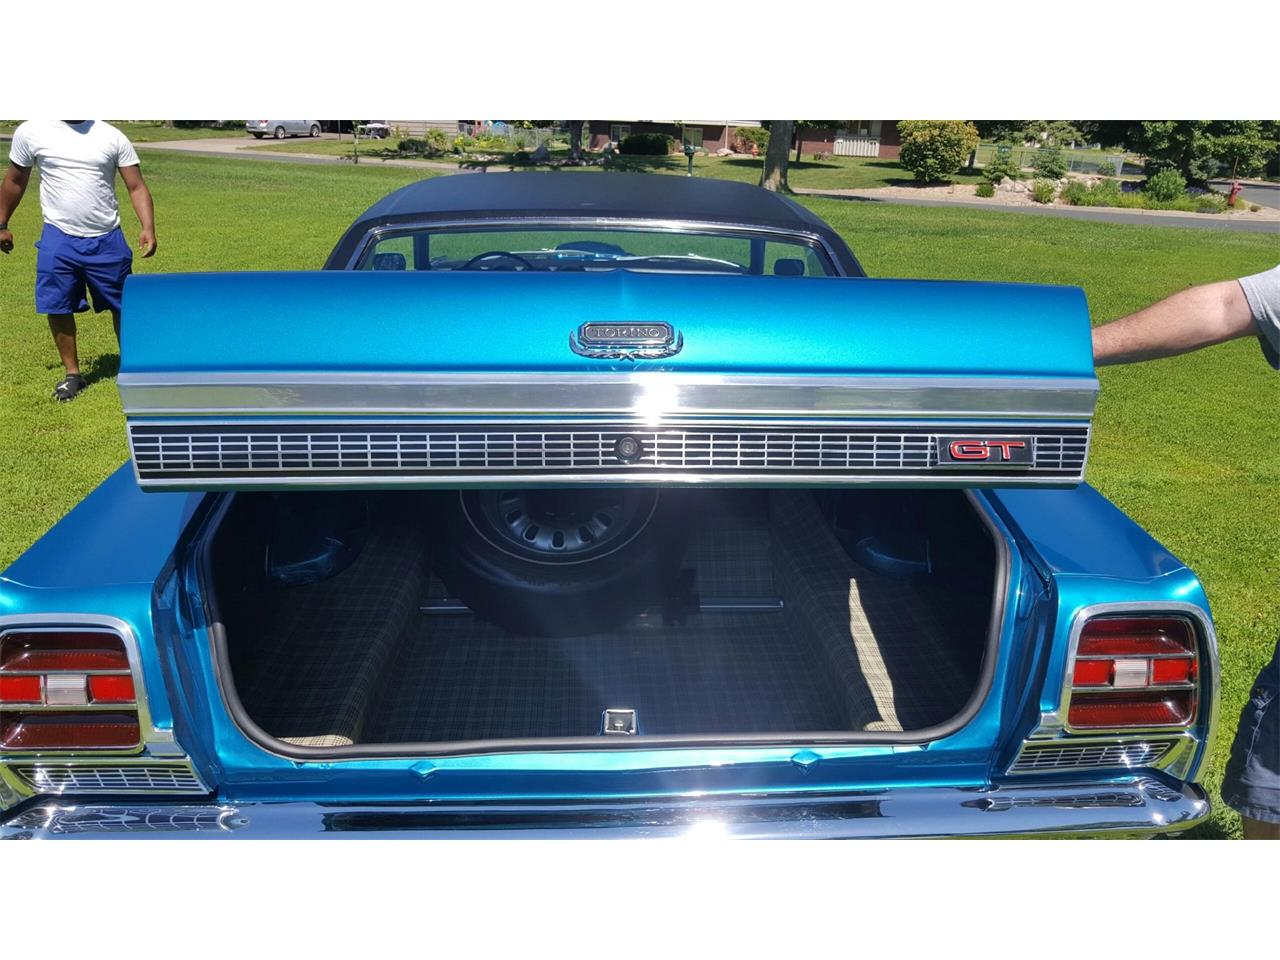 Large Picture of '69 Ford Torino located in Minnesota Auction Vehicle Offered by Classic Rides and Rods - L8I4